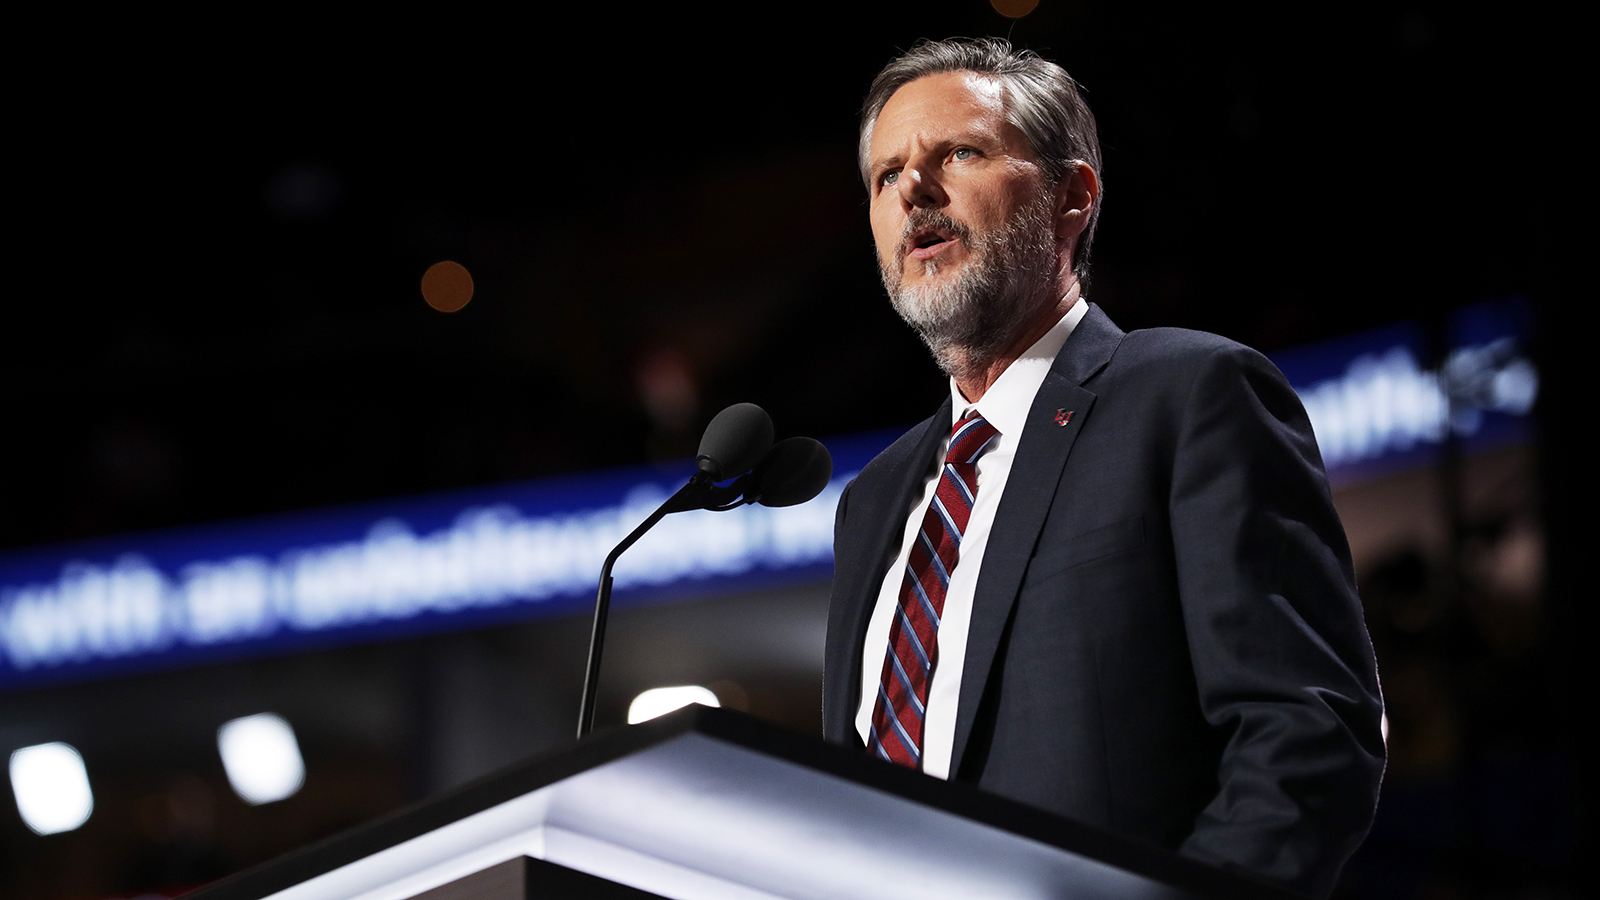 Liberty University has announced an interim president after Jerry Falwell's leave of absence